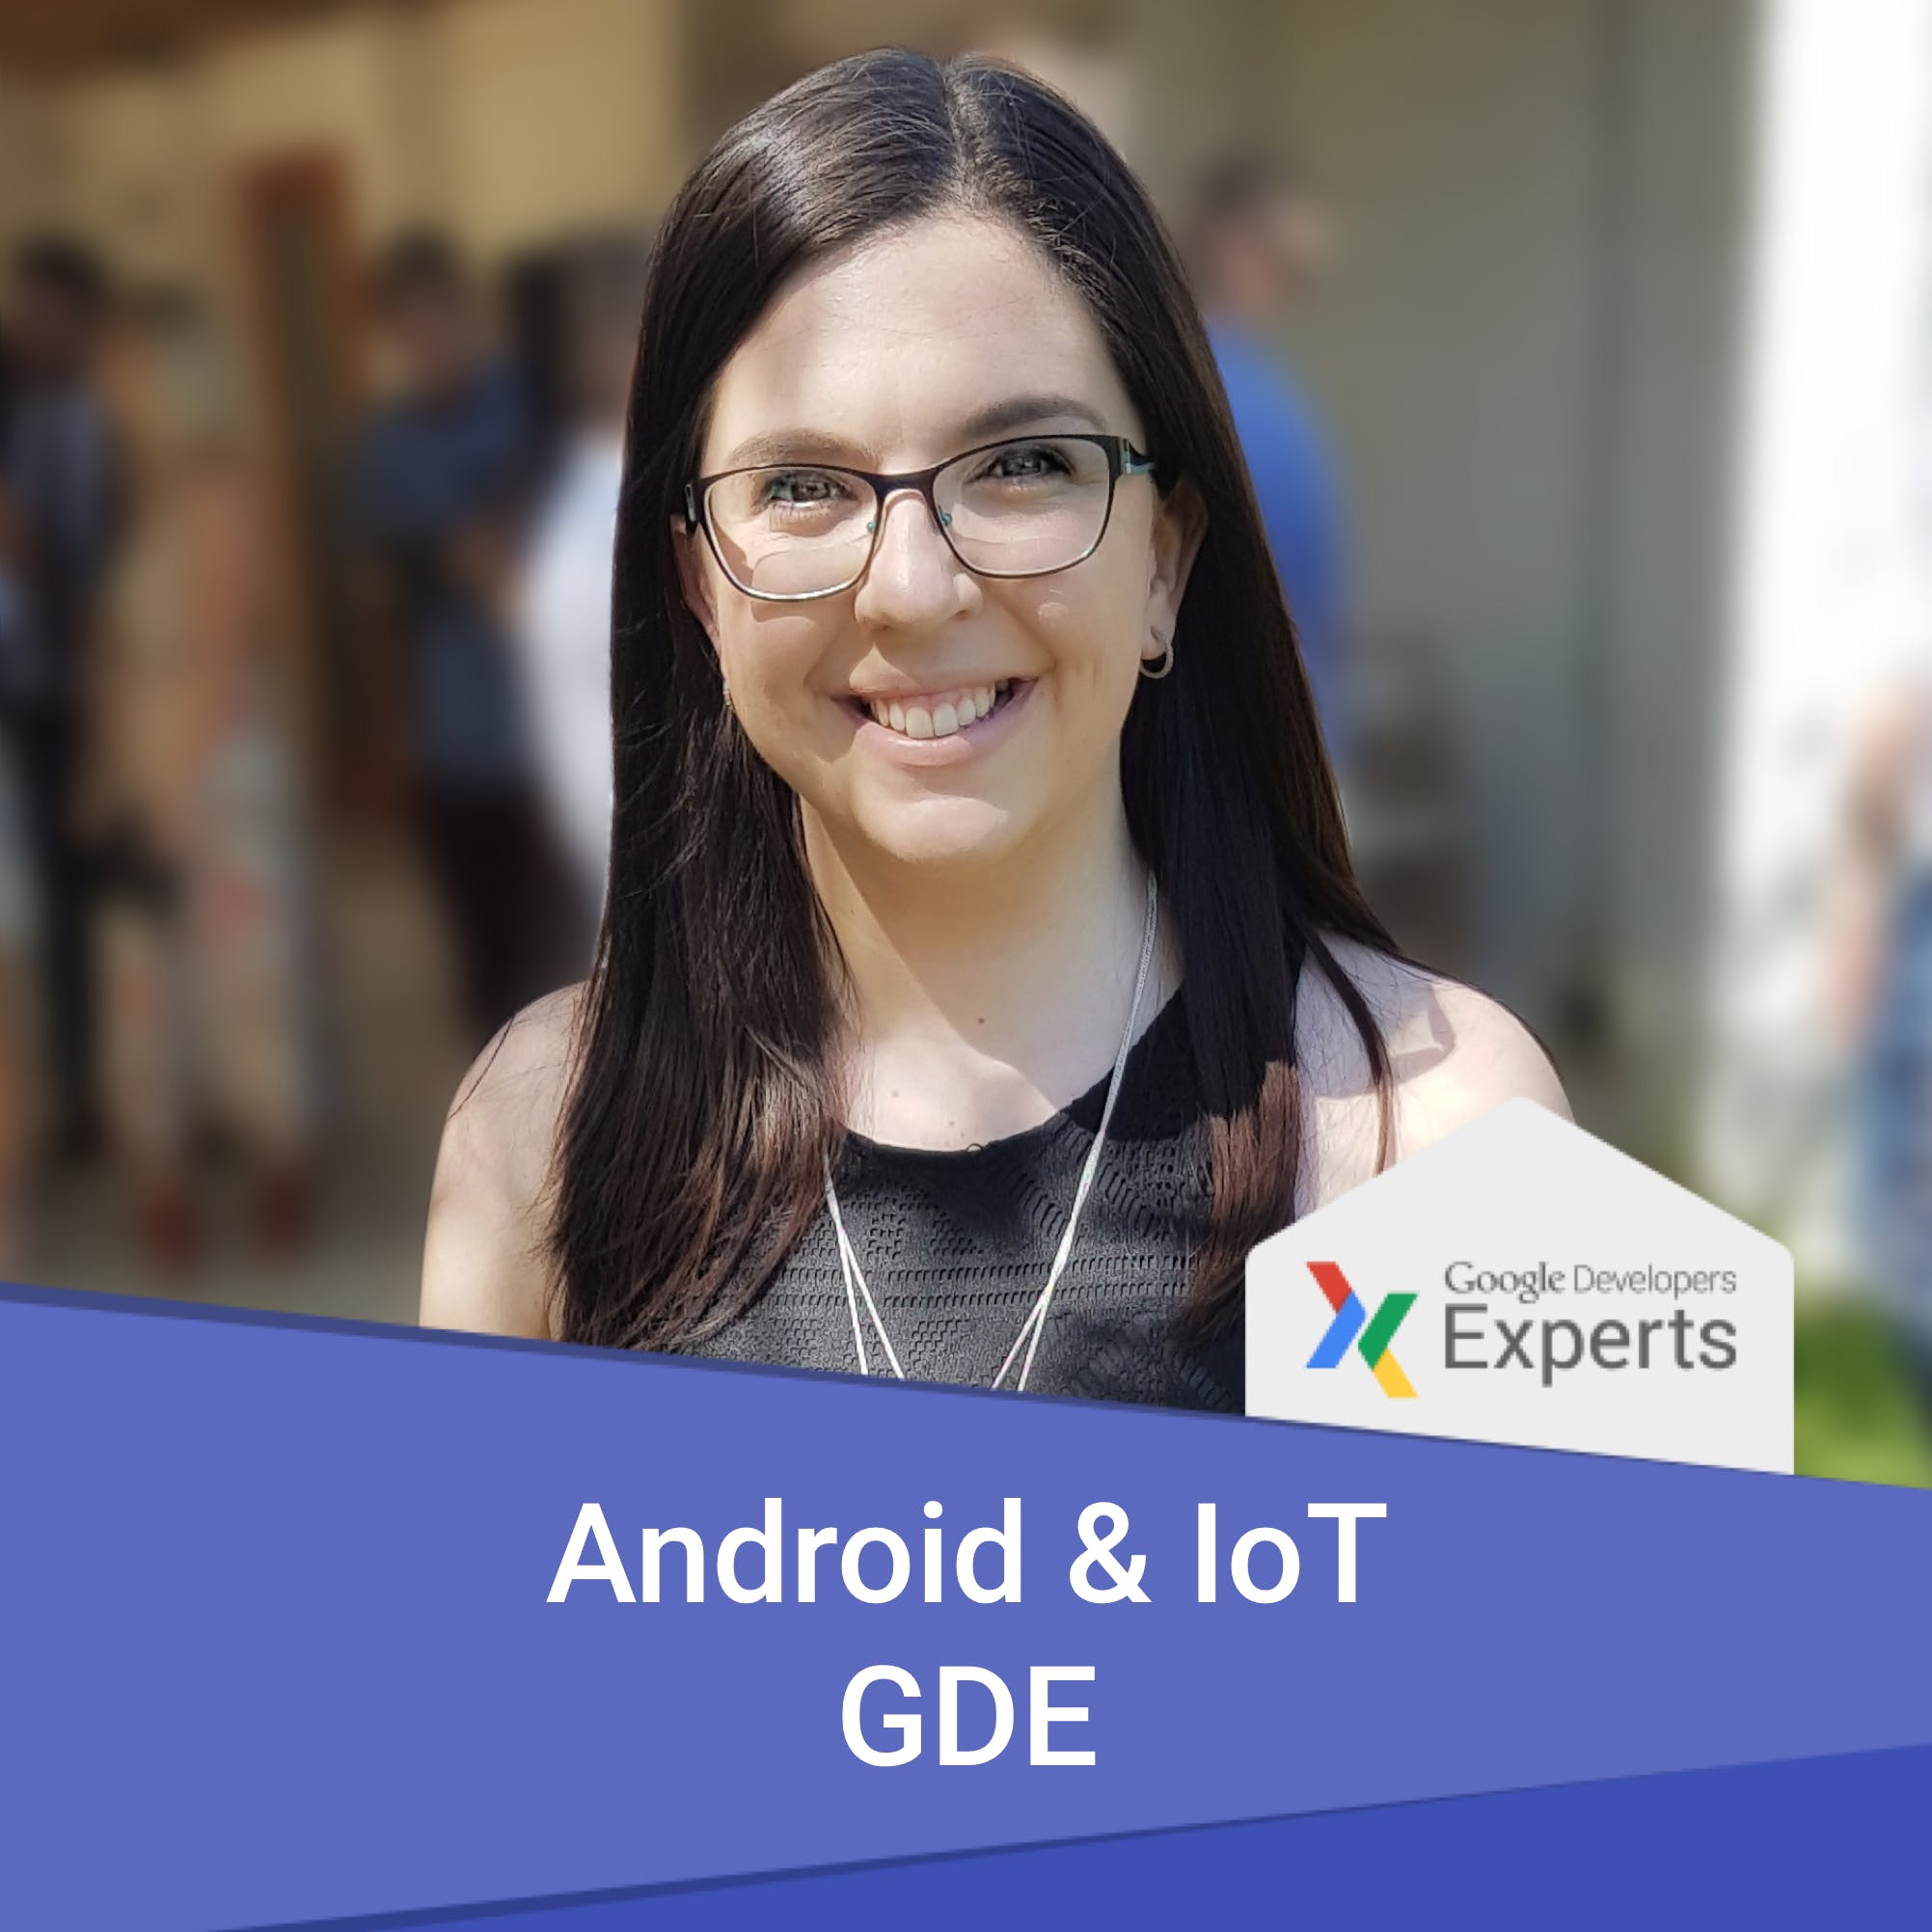 Android iot gde profilepic 2017 jbmns0a92d